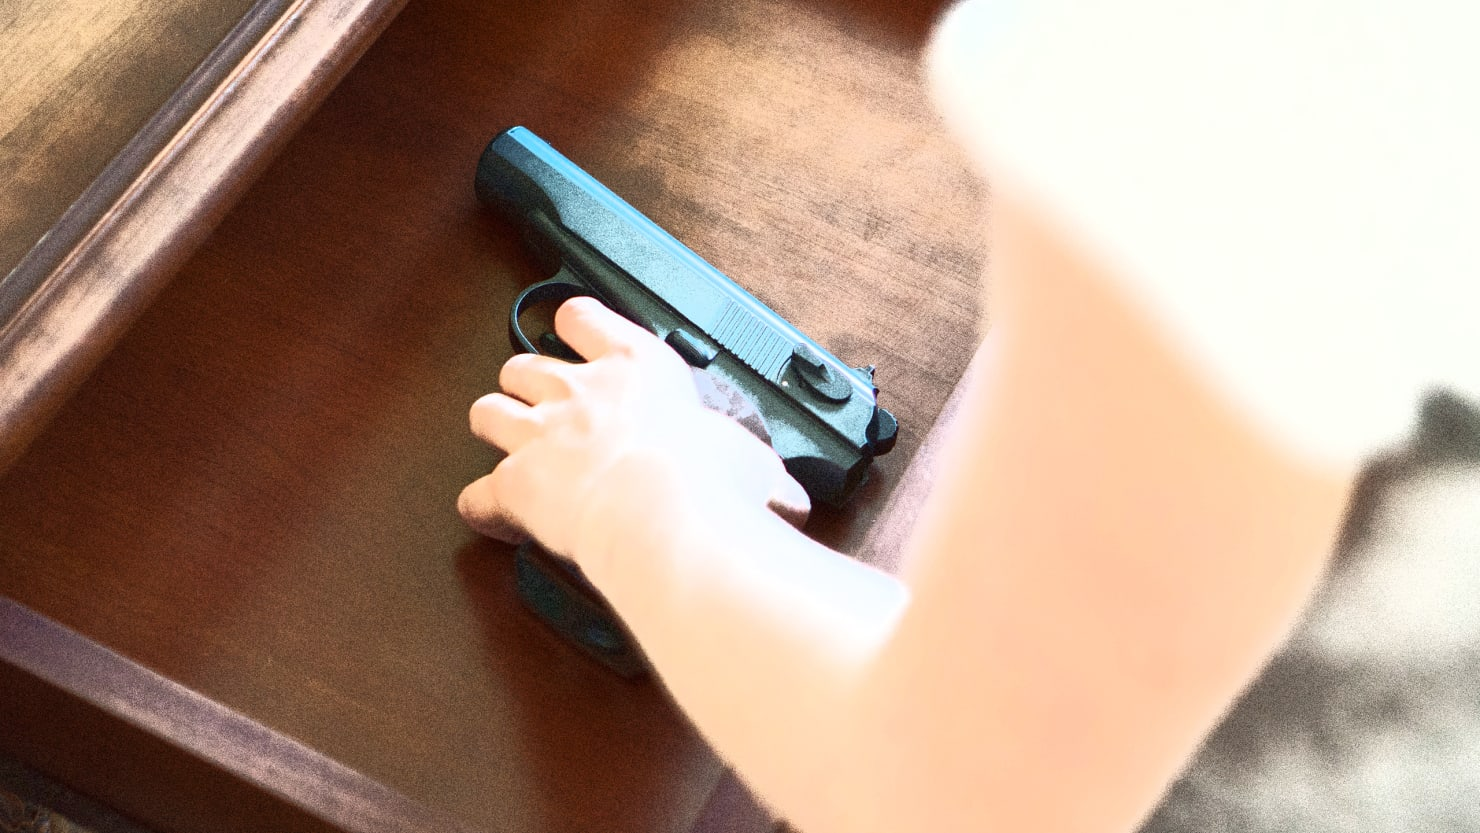 4.6 million kids live in homes with unlocked, loaded guns